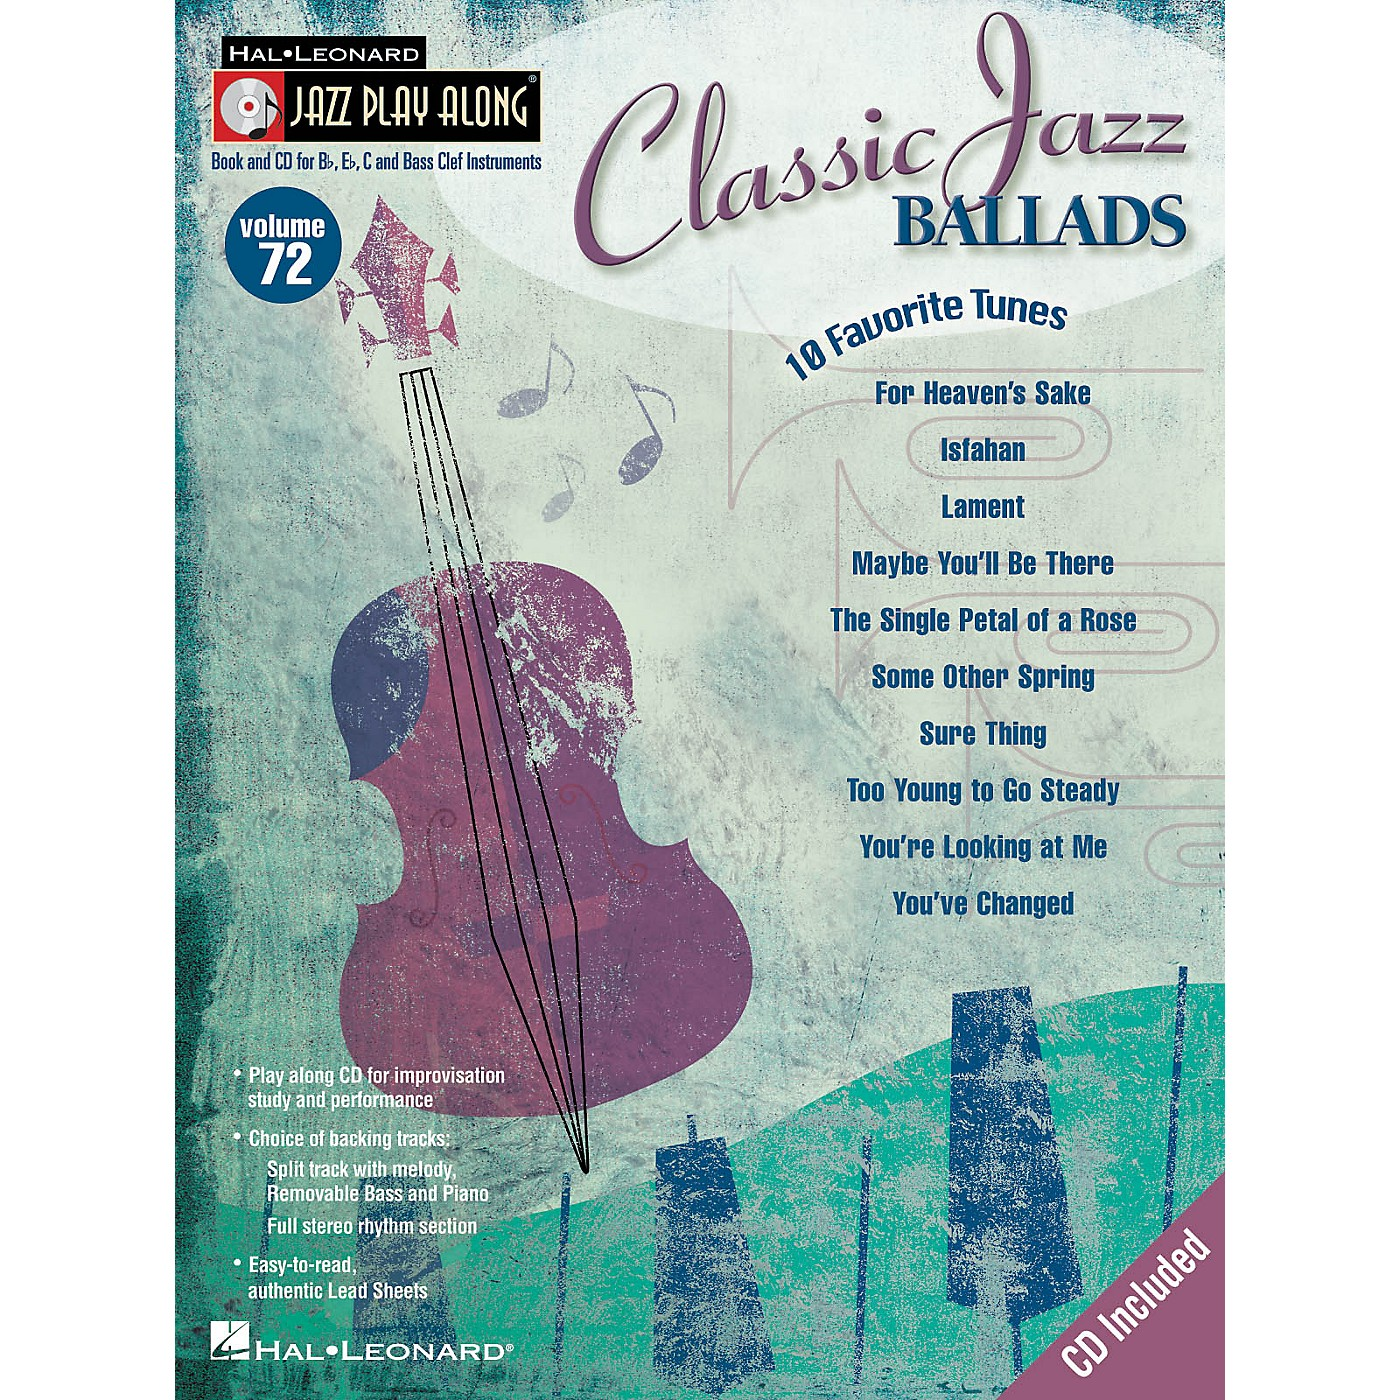 Hal Leonard Classic Jazz Ballads (Jazz Play-Along Volume 72) Jazz Play Along Series Softcover with CD thumbnail